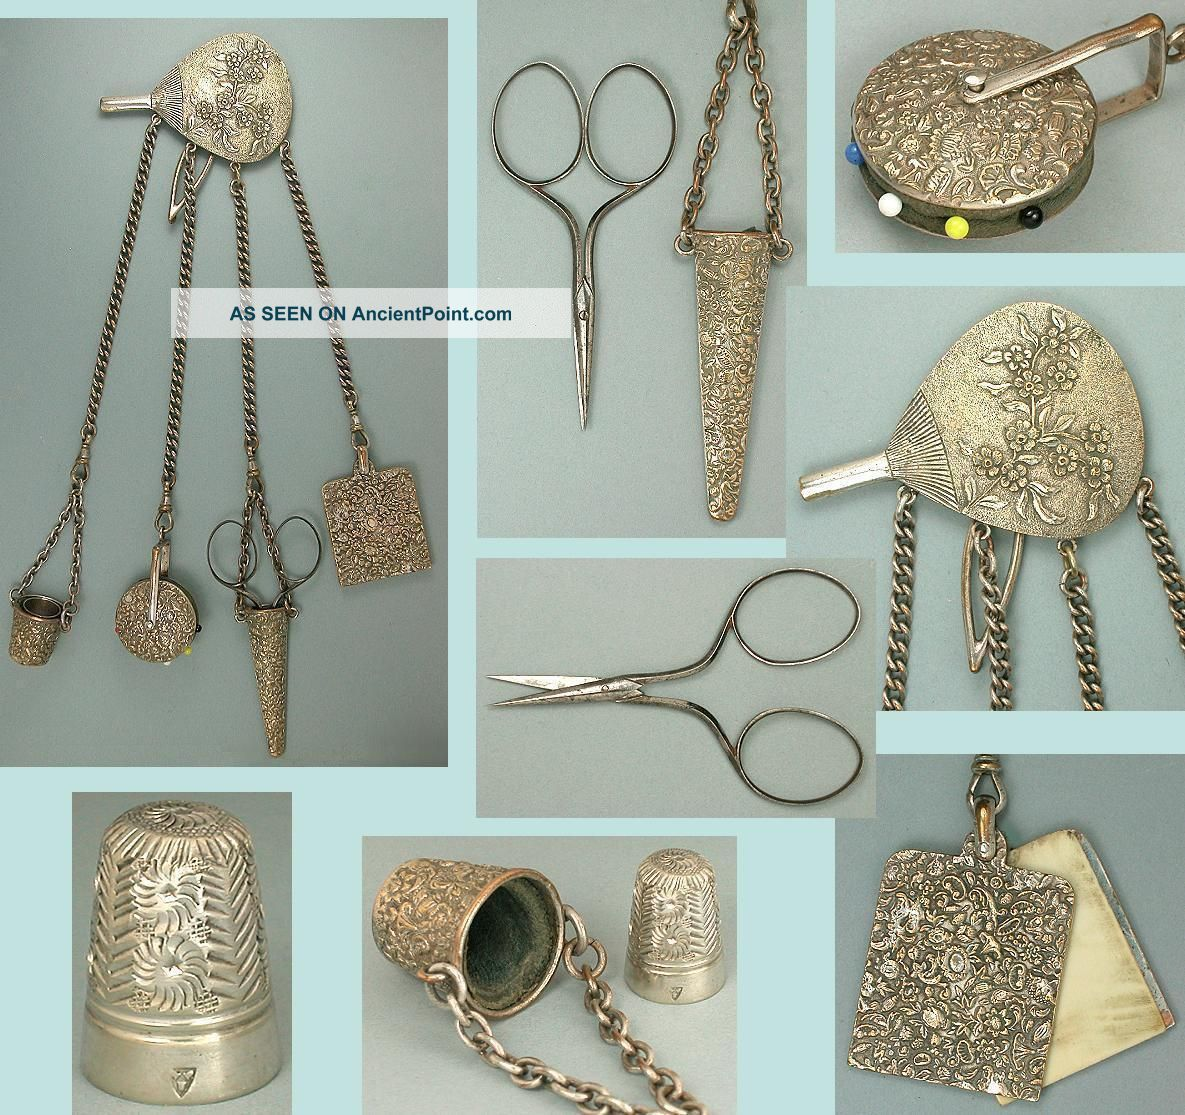 Ornate Antique English Sewing Chatelaine W/ Scissors,  Thimble,  Pin Wheel C1890 Other Antique Sewing photo